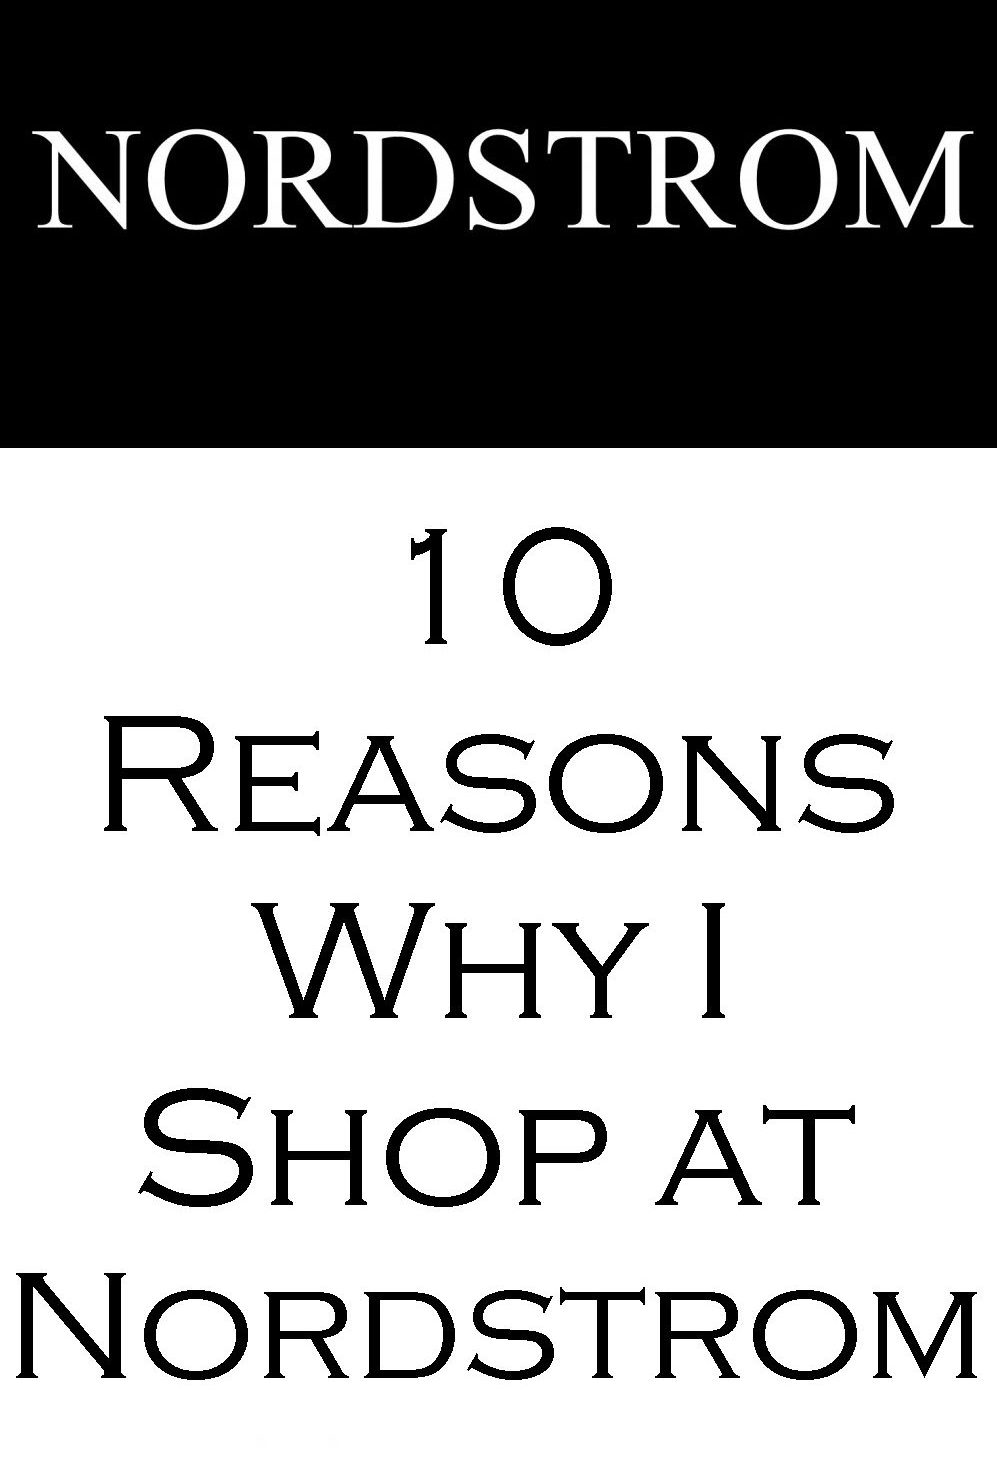 Ten Reasons Why I Shop at Nordstrom